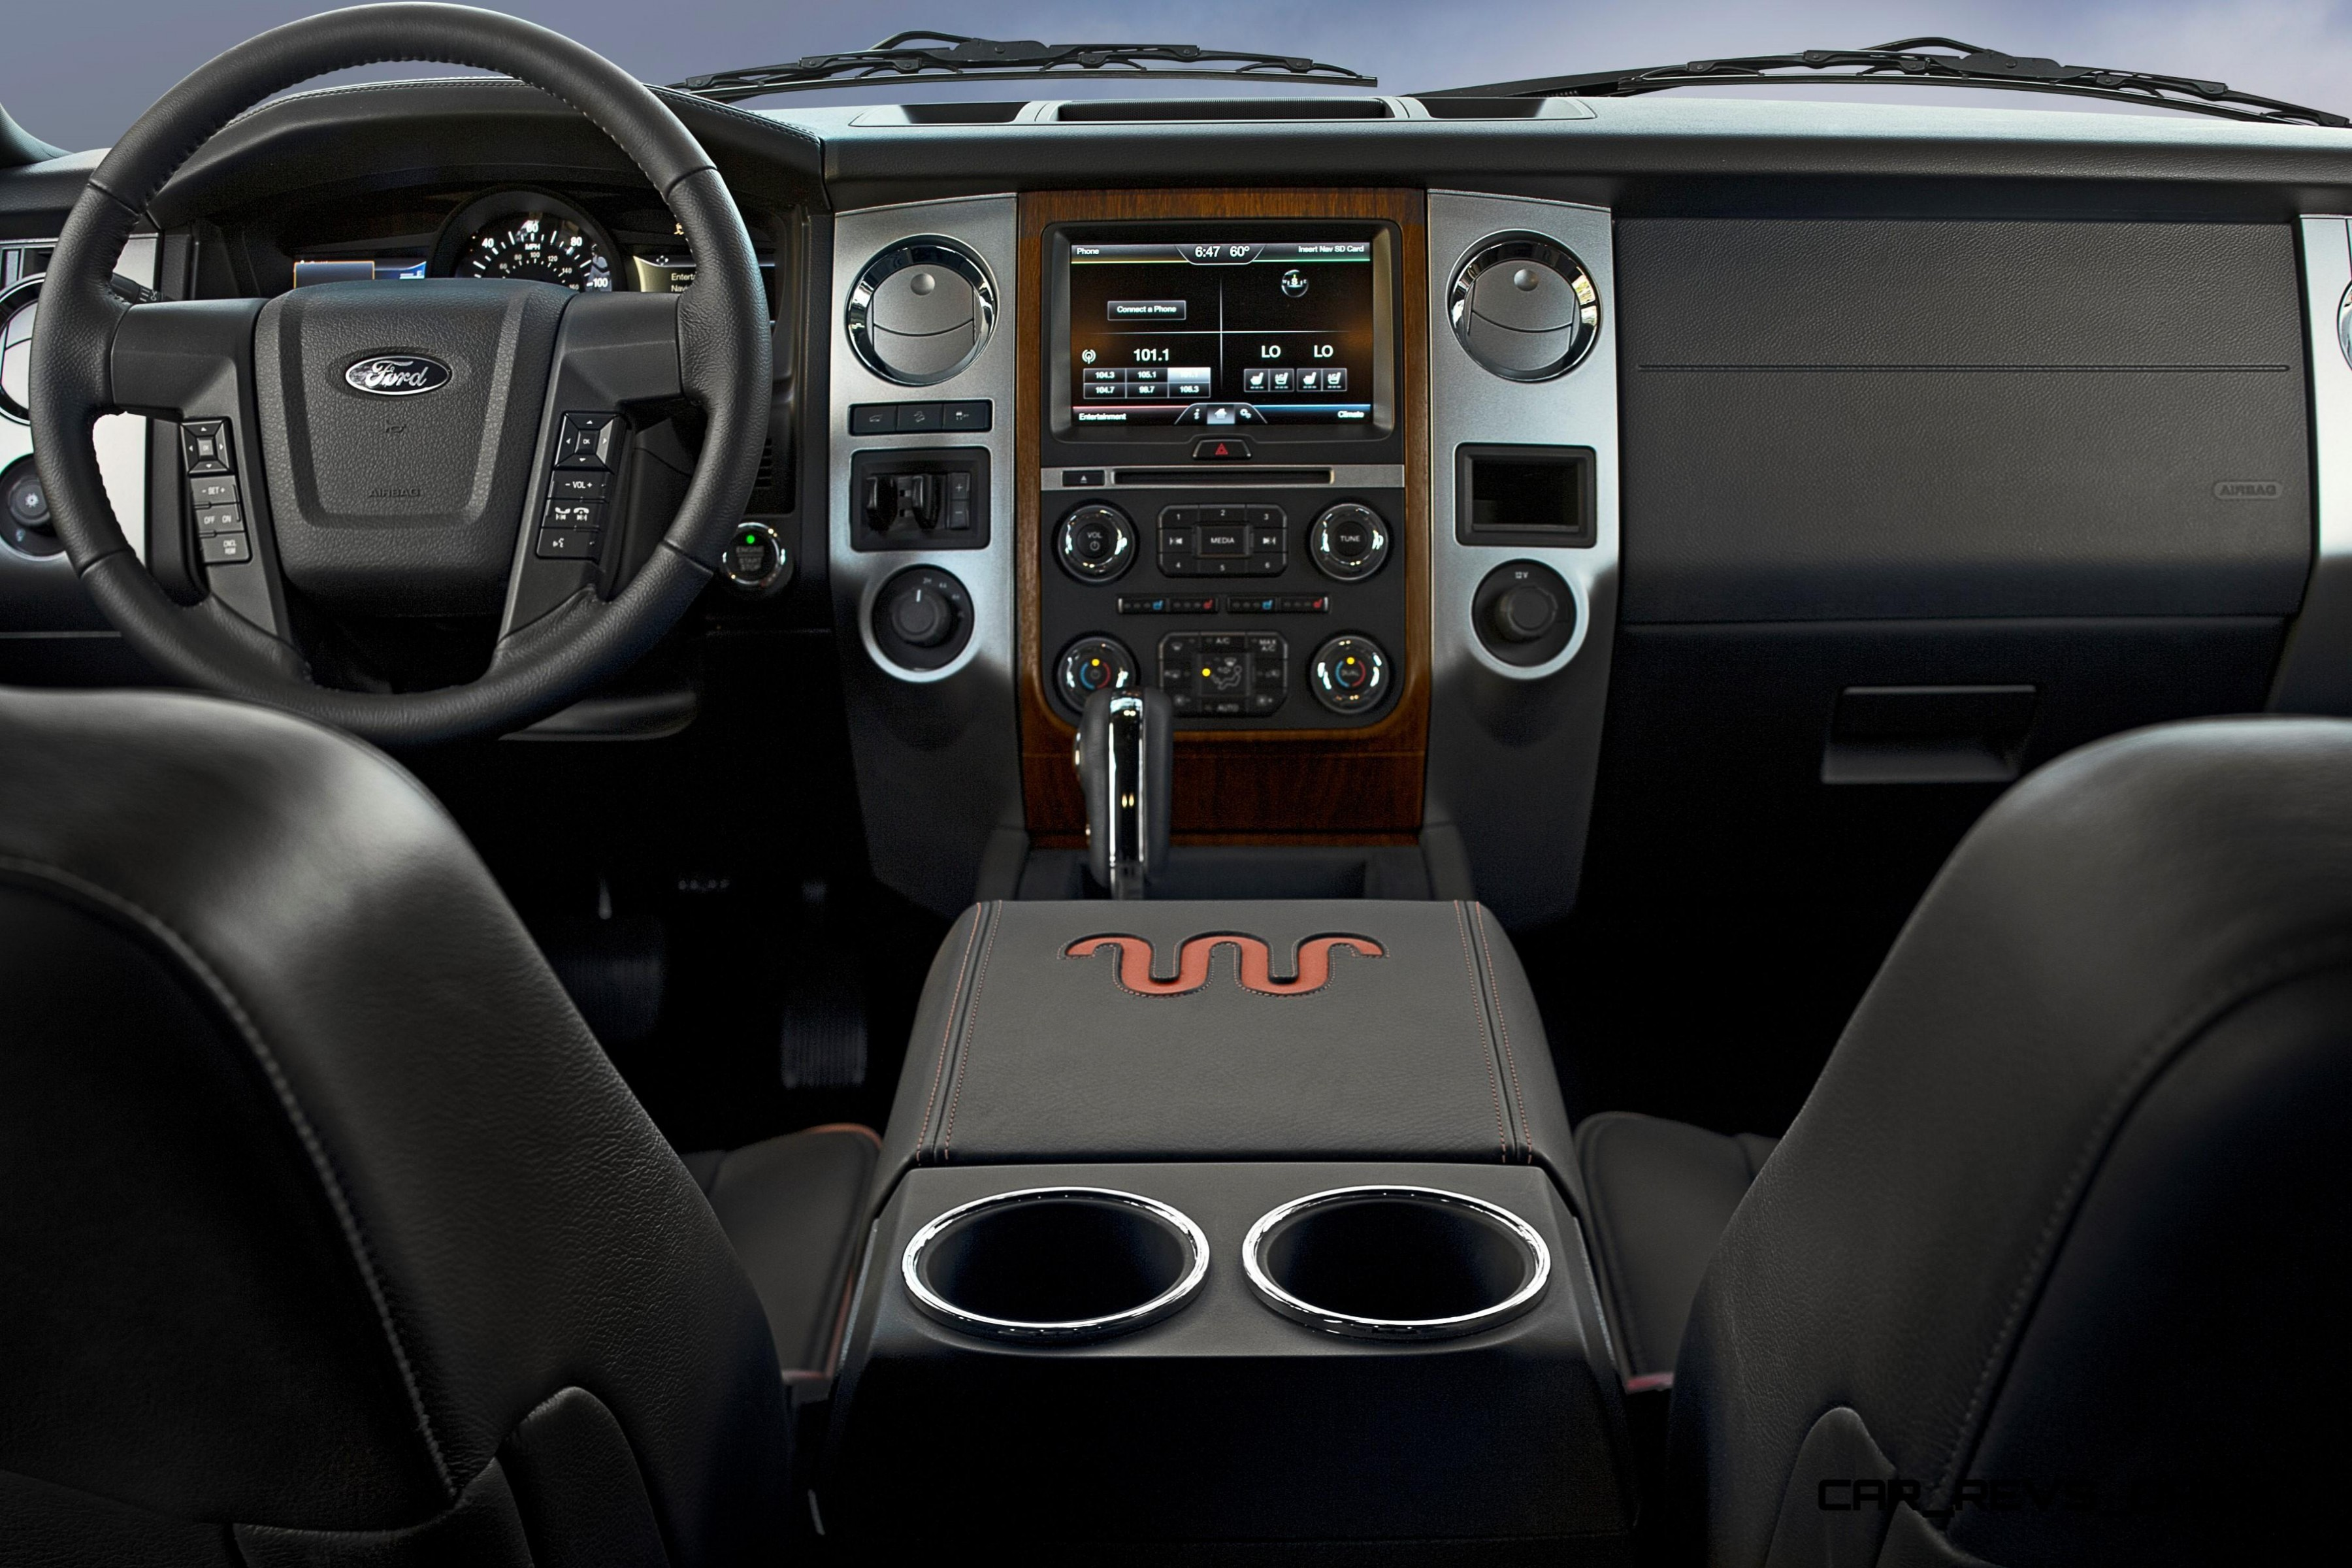 2017 Ford F 150 Xlt Configurations >> Update1 - 2015 FORD F-150 Style Guide To Trims and Option